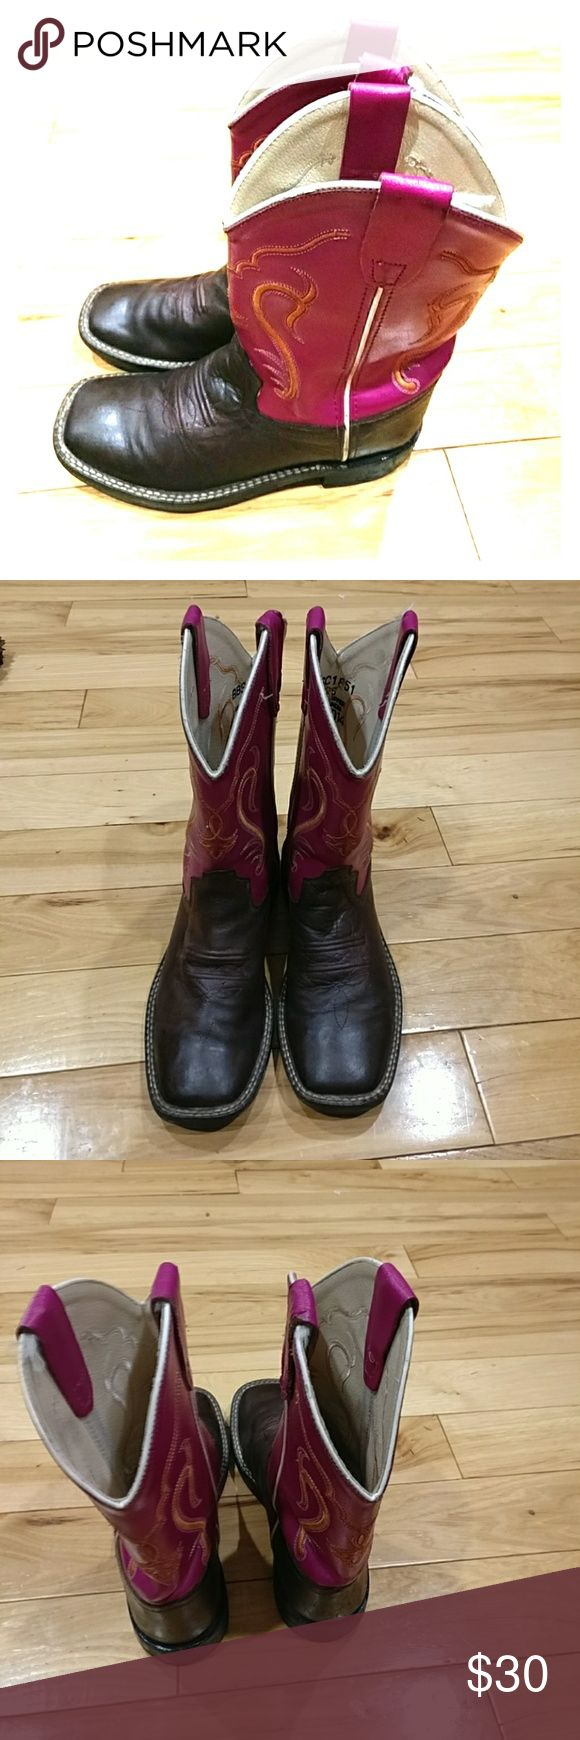 Old west boots size 2.5 Old west girls boots size 2.5 they look really nice slightly worn in one area on the inside, otherwise they are in excellent condition. I'm selling them at an excellent price so get them today yeah old west Shoes Boots